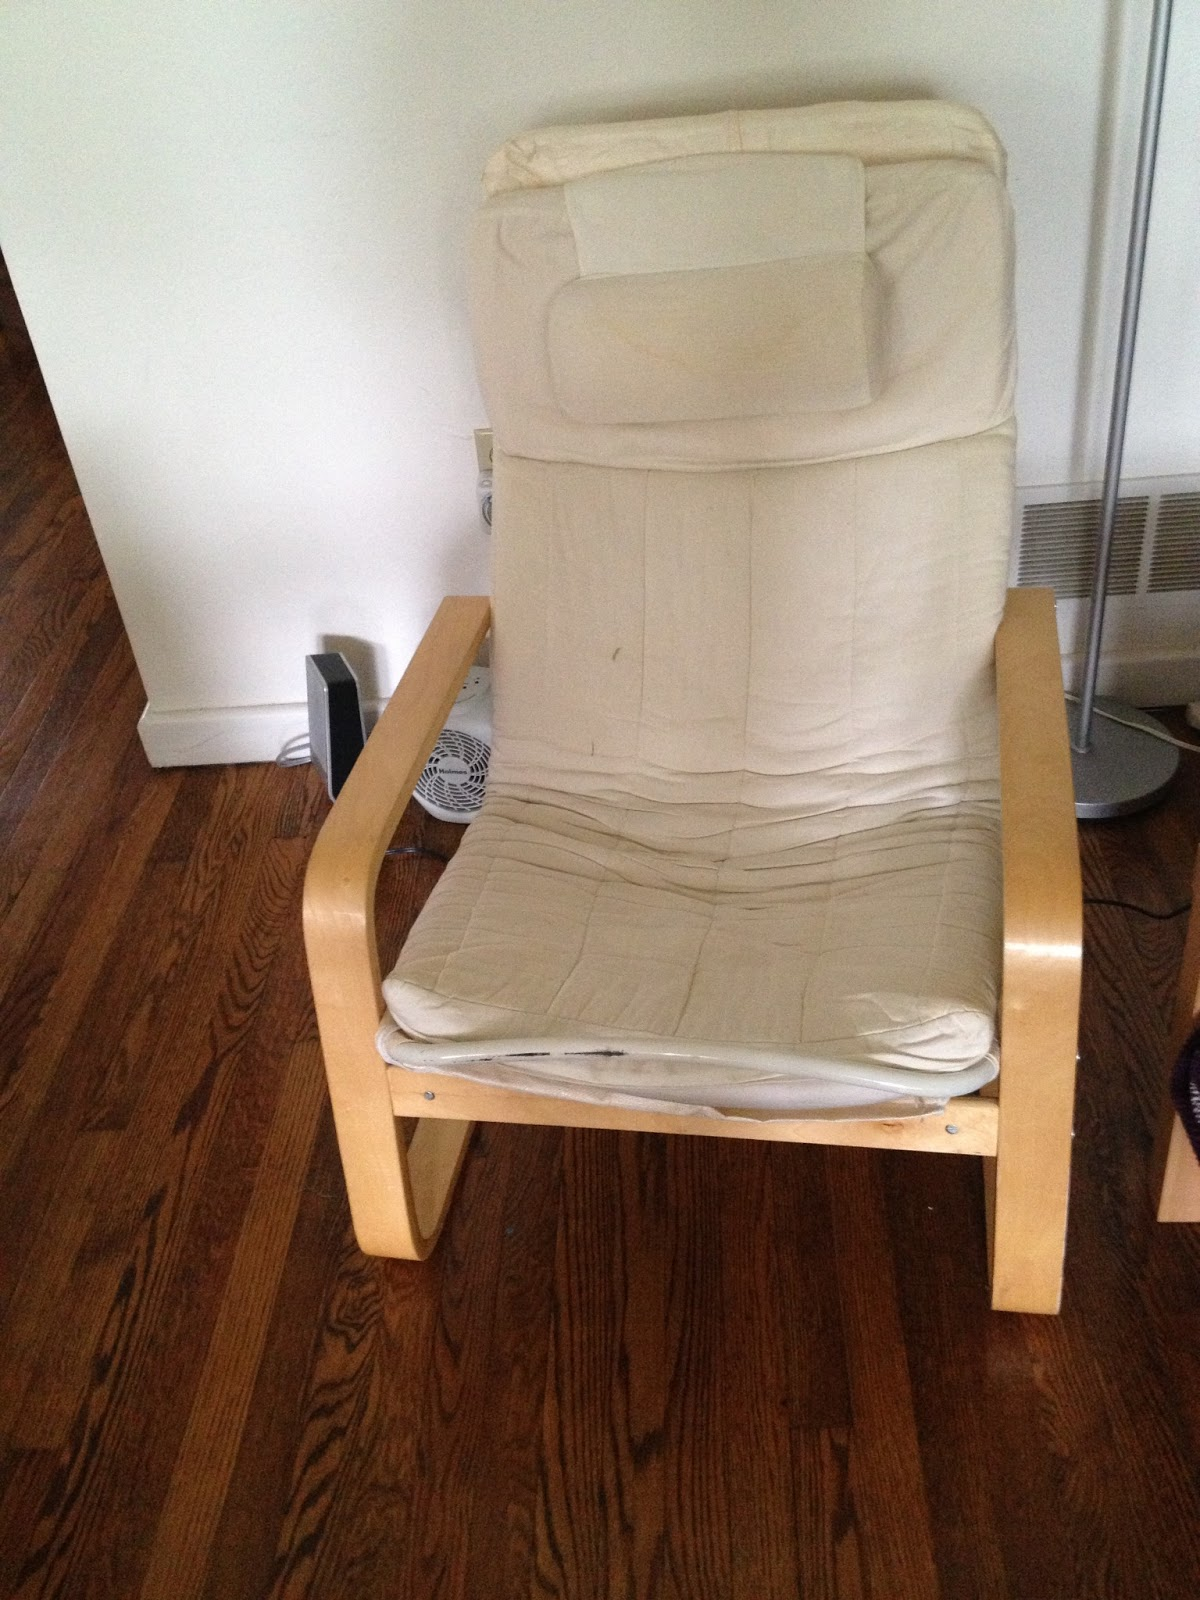 Ikea Poang Chair Craigslist ~ DIY IKEA Hack Poang Chair Cover  needle & thread magic